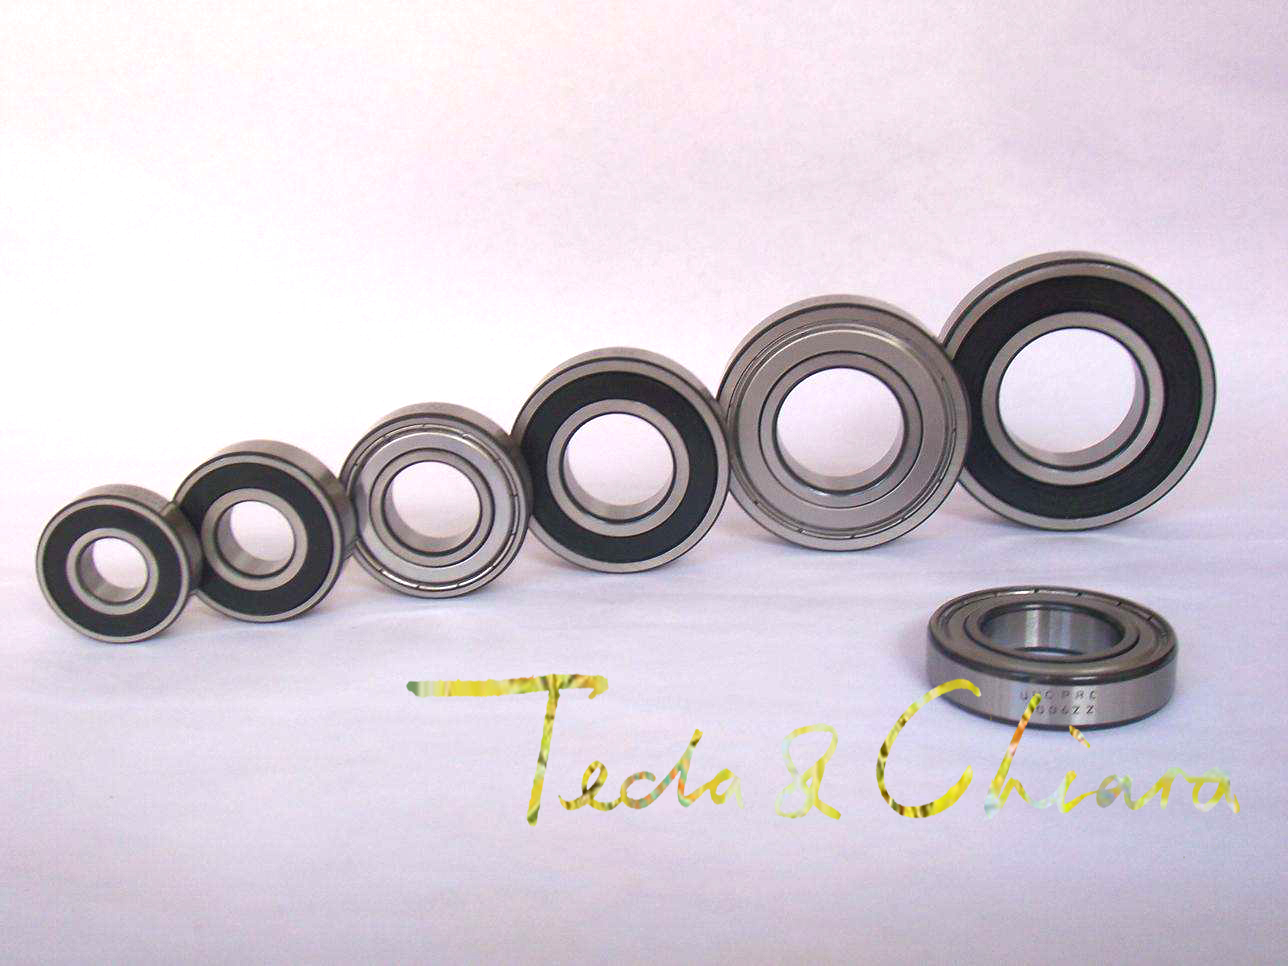 2019 New Style 10pcs 1lot R2 R2zz R2rs R2-2z R2z R2-2rs Zz Rs Rz 2rz Deep Groove Ball Bearings 3.175 X 9.525 X 3.967mm 1/8 X 3/8 X 5/32 Quell Summer Thirst Power Transmission